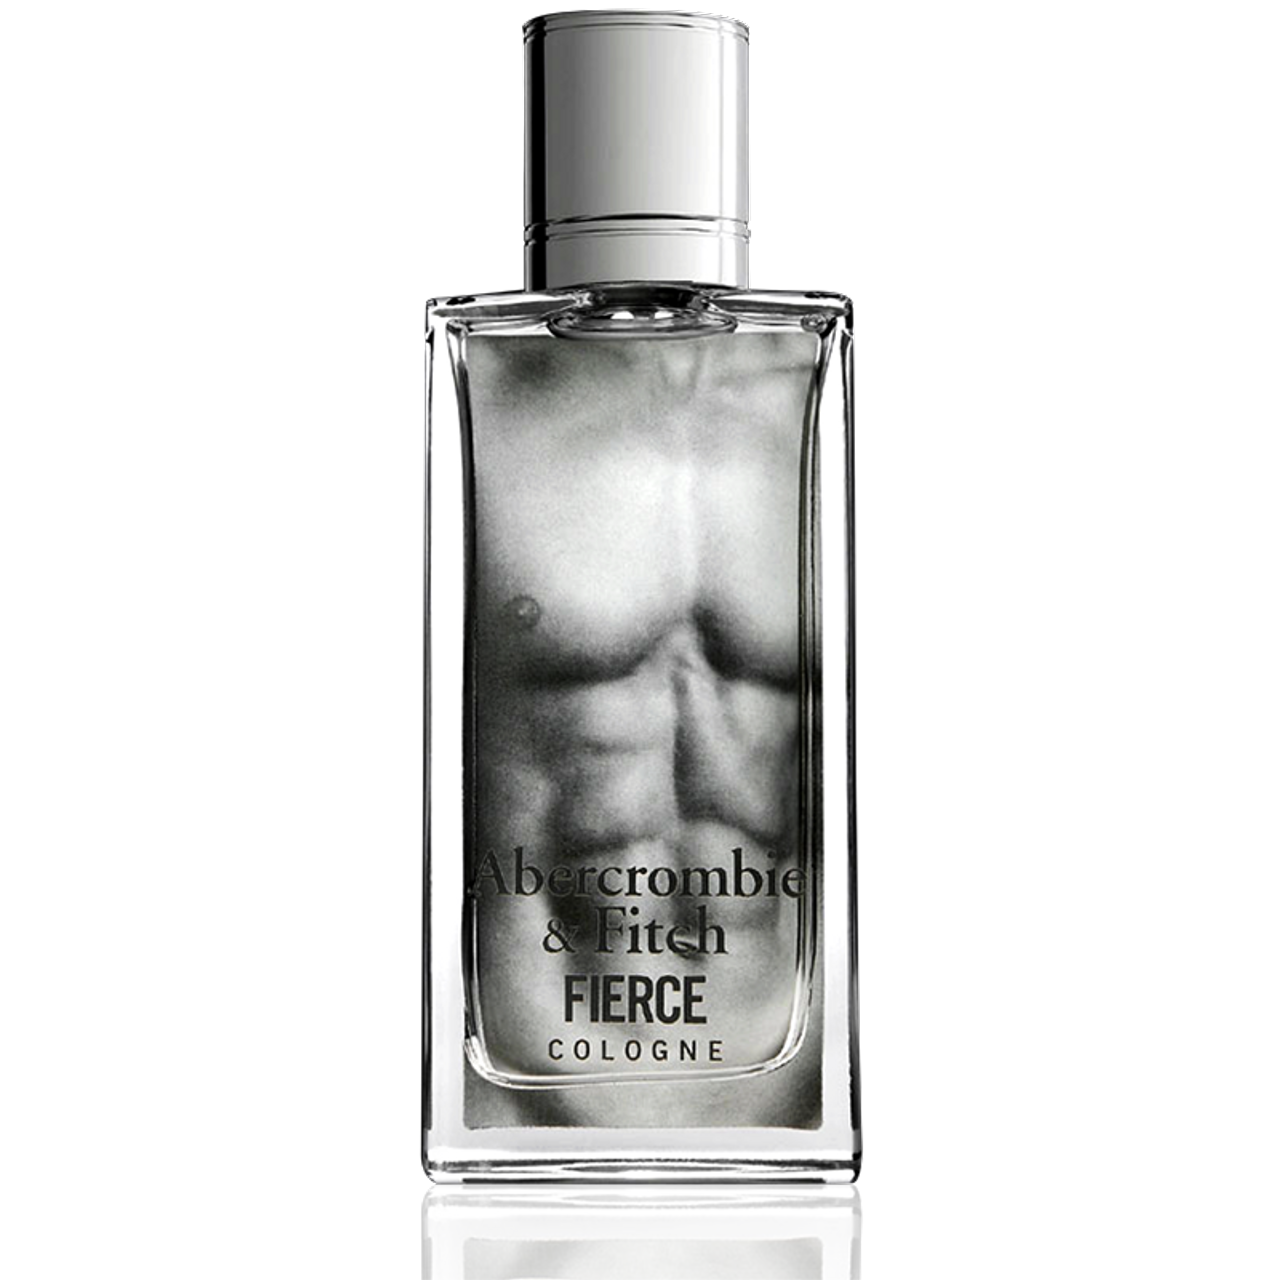 Abercrombie & Fitch Fierce Cologne Spray 200ml